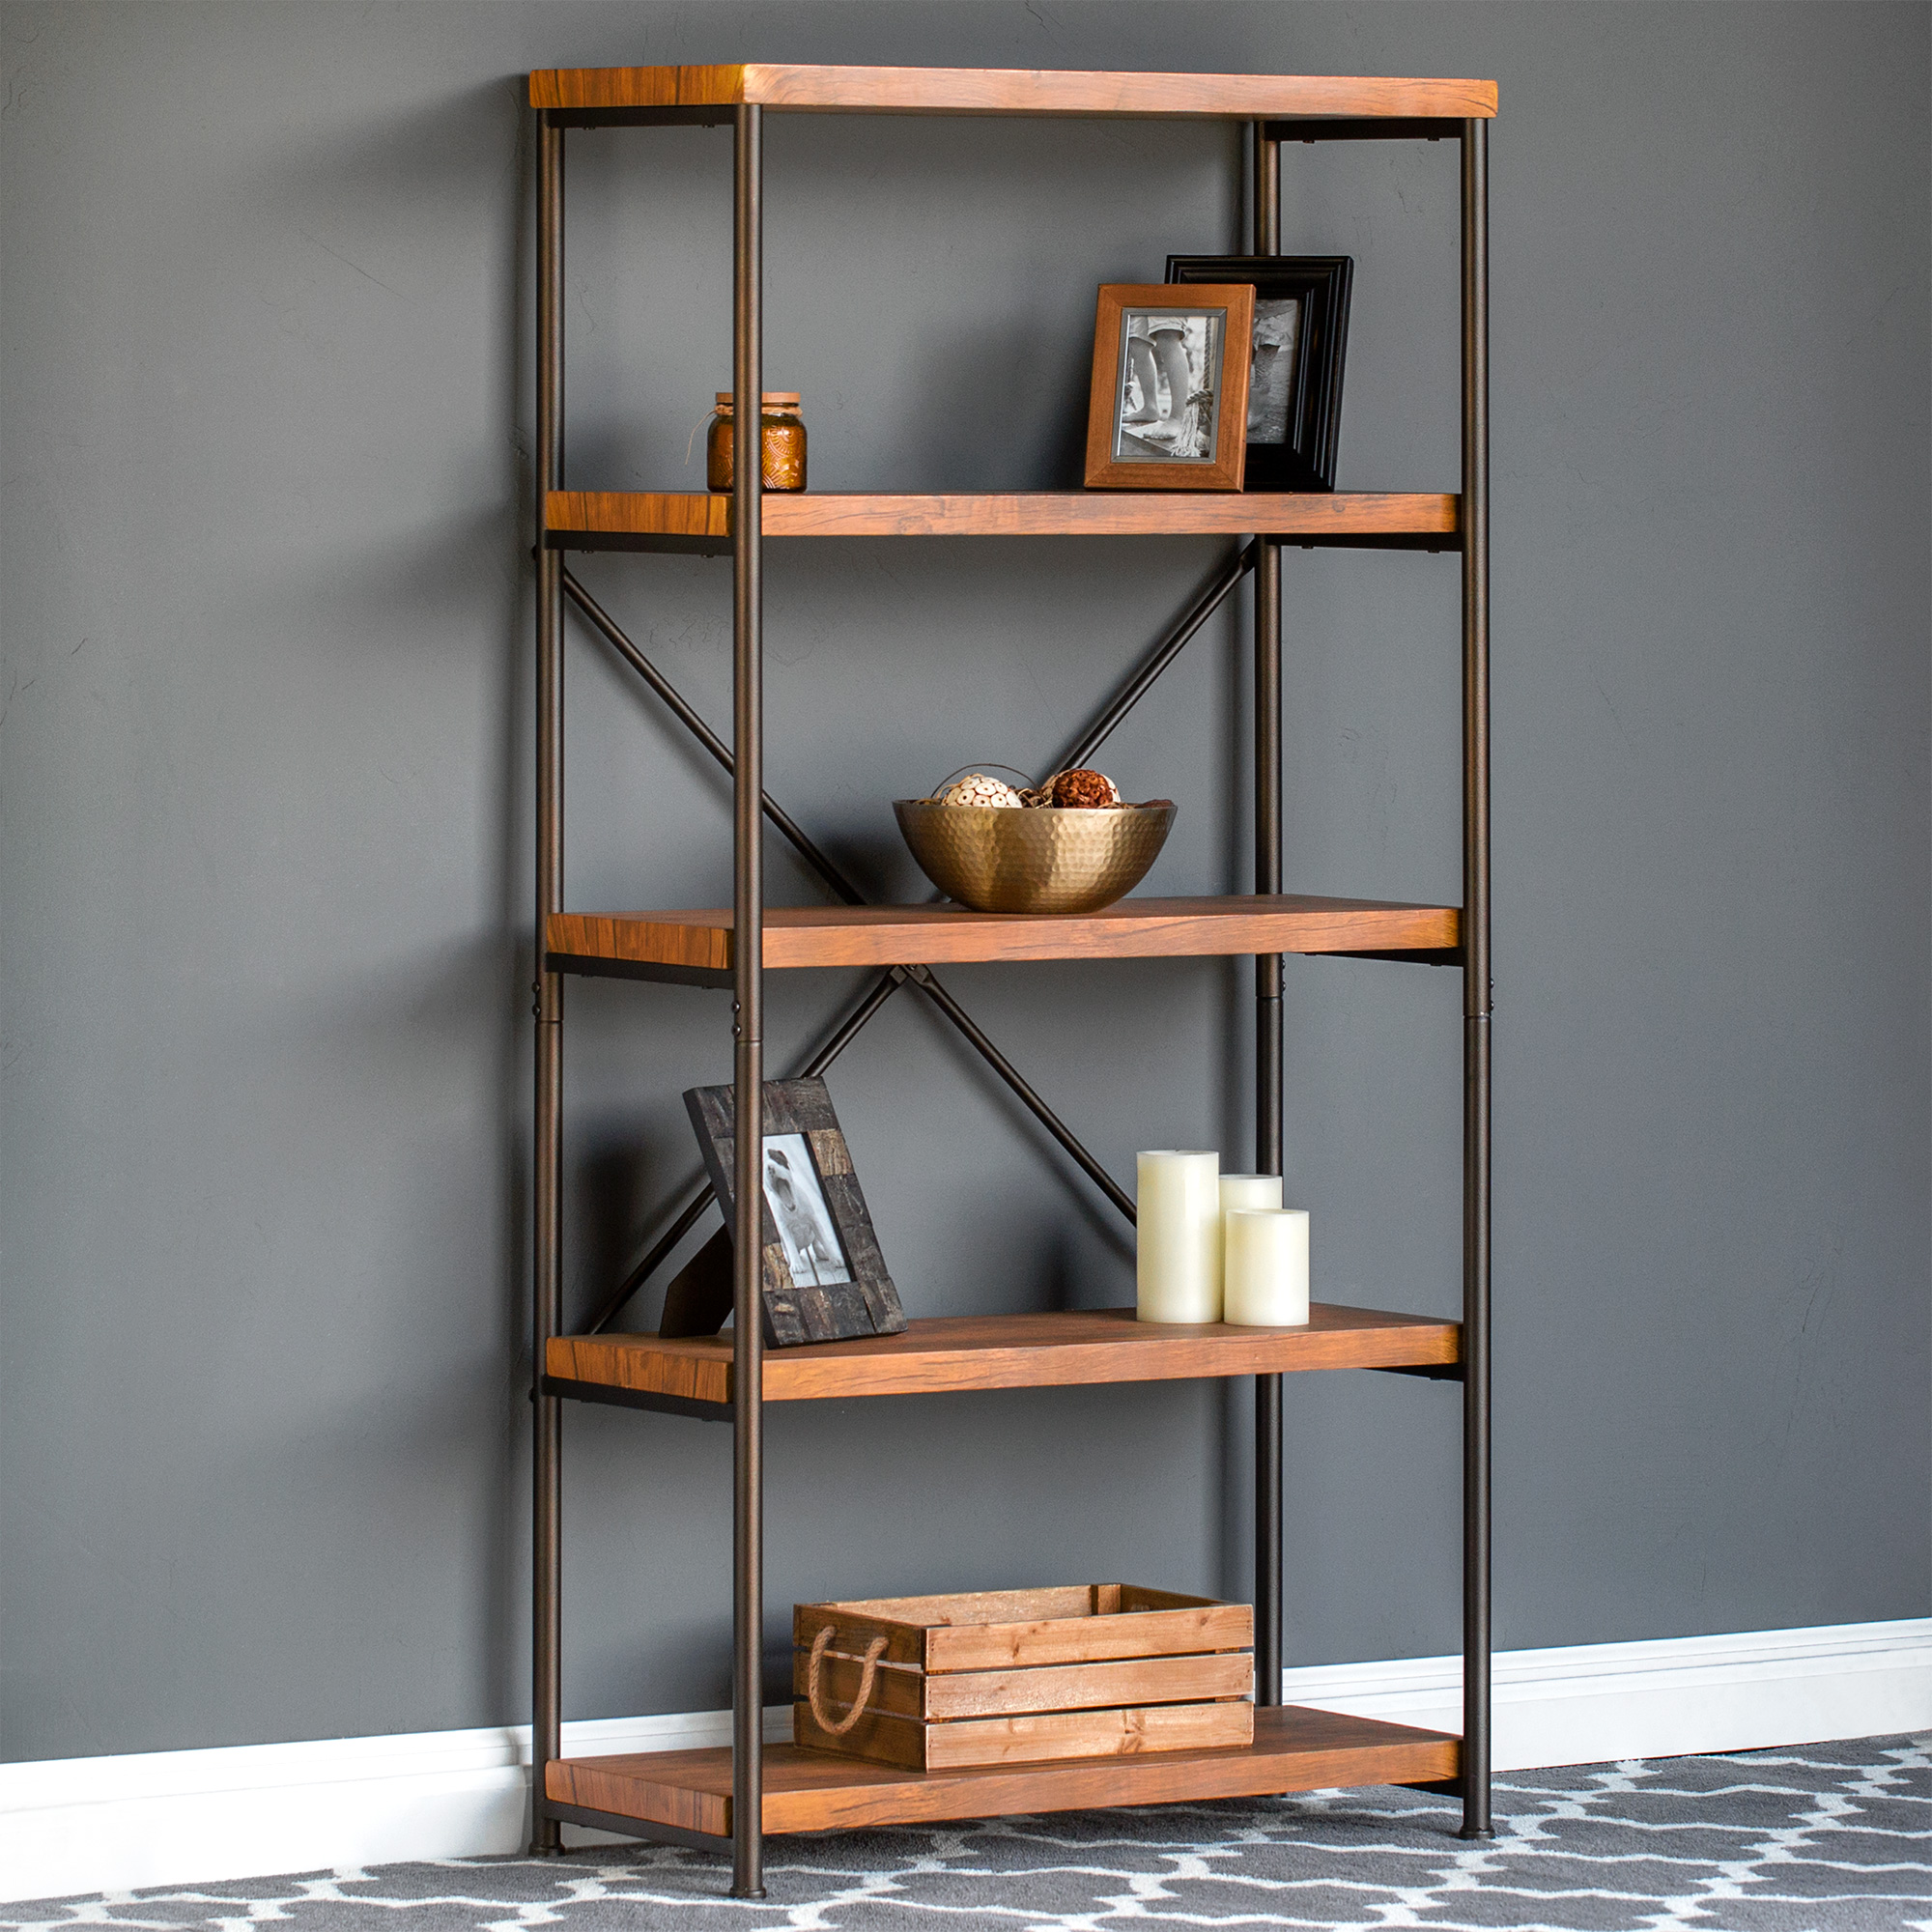 Best Choice Products 4-Tier Rustic Industrial Bookshelf Display Decor Accent for Living Room, Bedroom, Office w/ Metal Frame, Wood Shelves - Brown